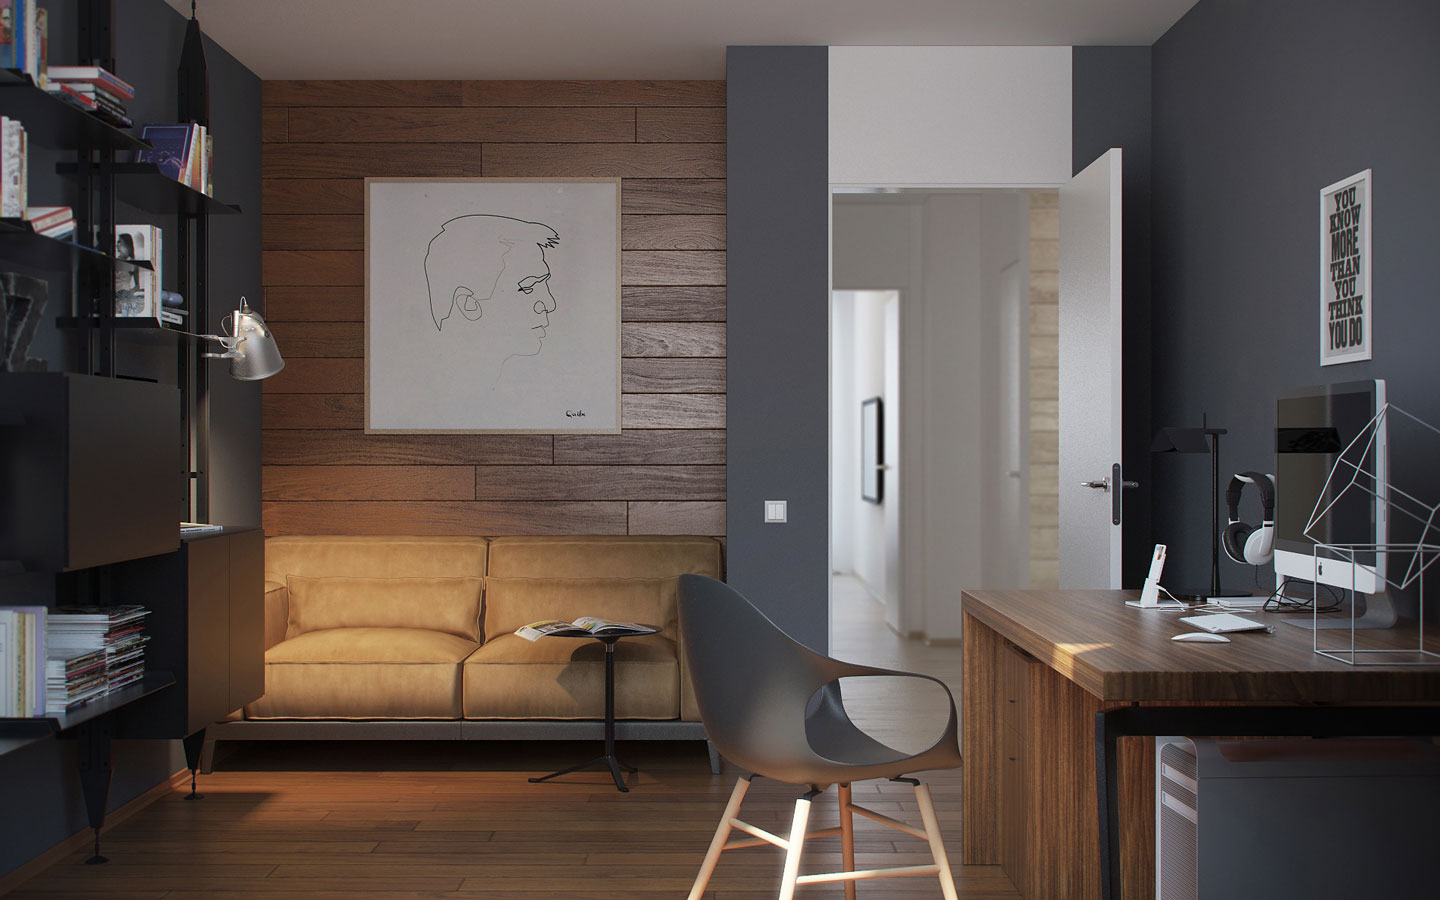 5 ideas for a one bedroom apartment with study includes Grey interior walls